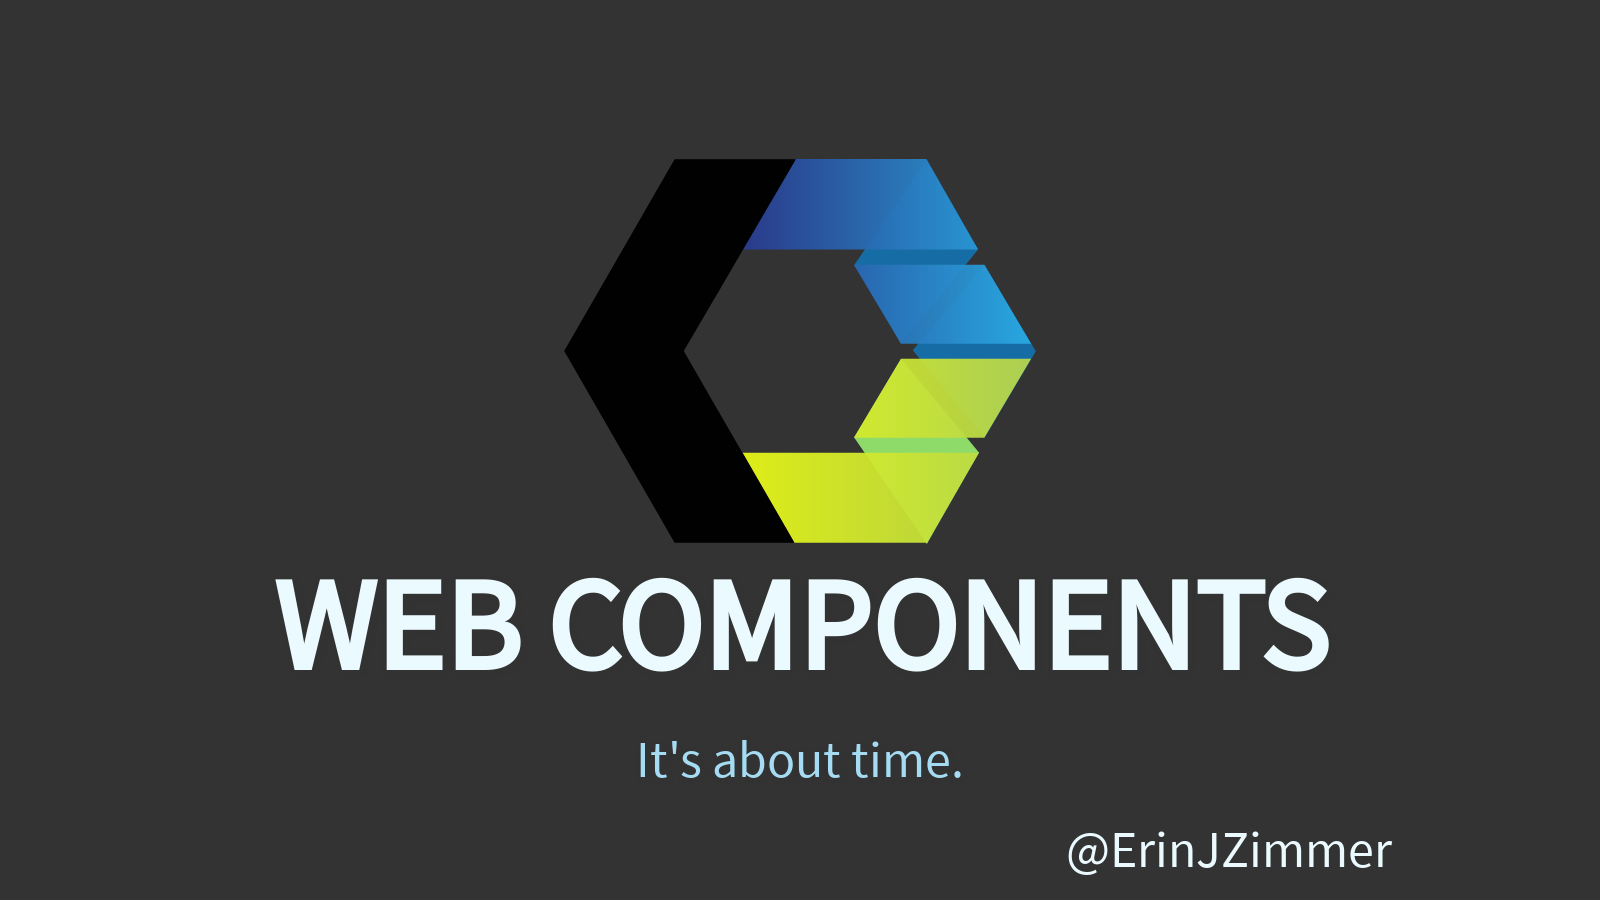 Web Components. It's about time.